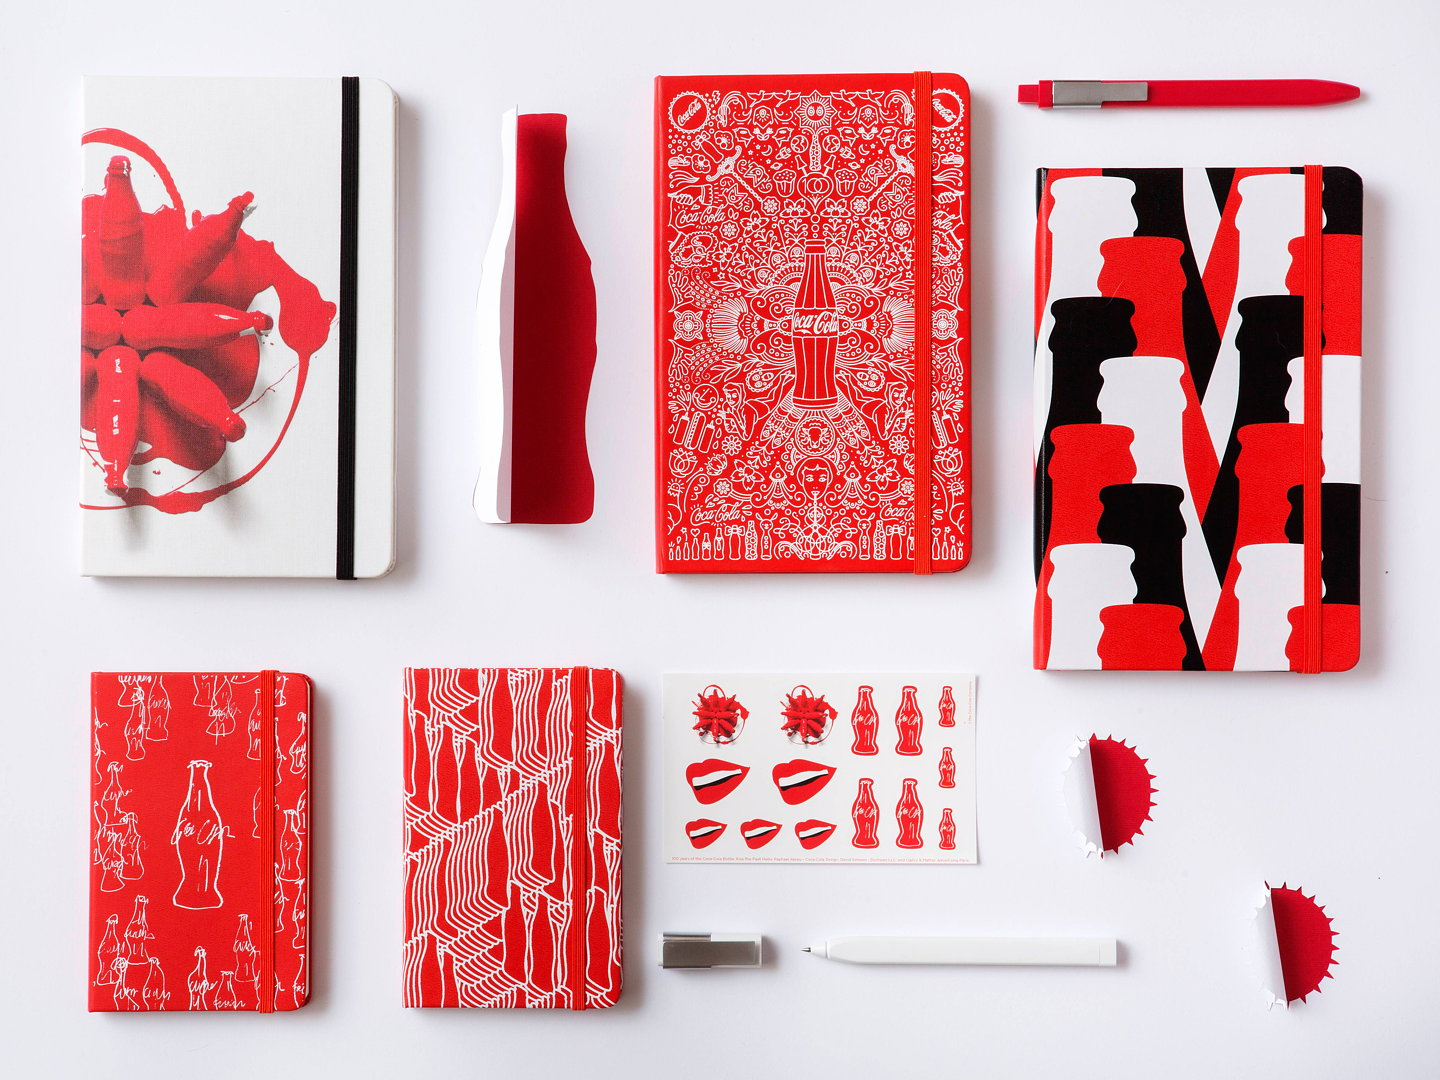 Moleskine_100th_Anniversary_of_Coca_Cola_Bottle_02_gallery.jpg